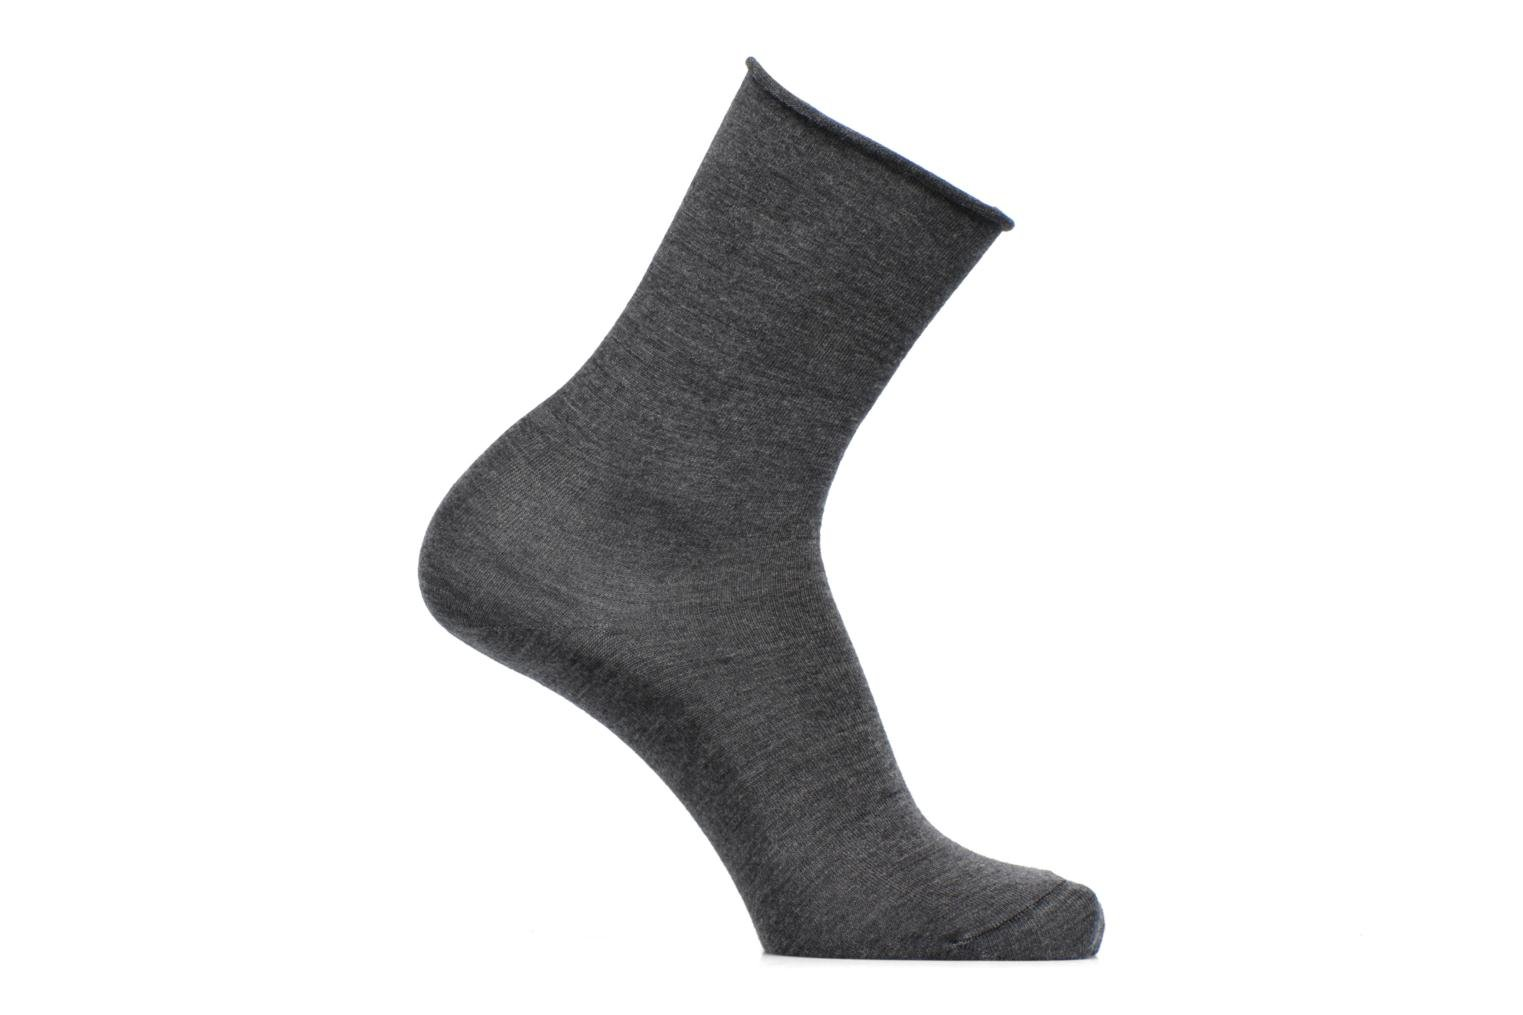 Chaussettes laine fine ANTHRACITE/CHARCOAL GREY T8H